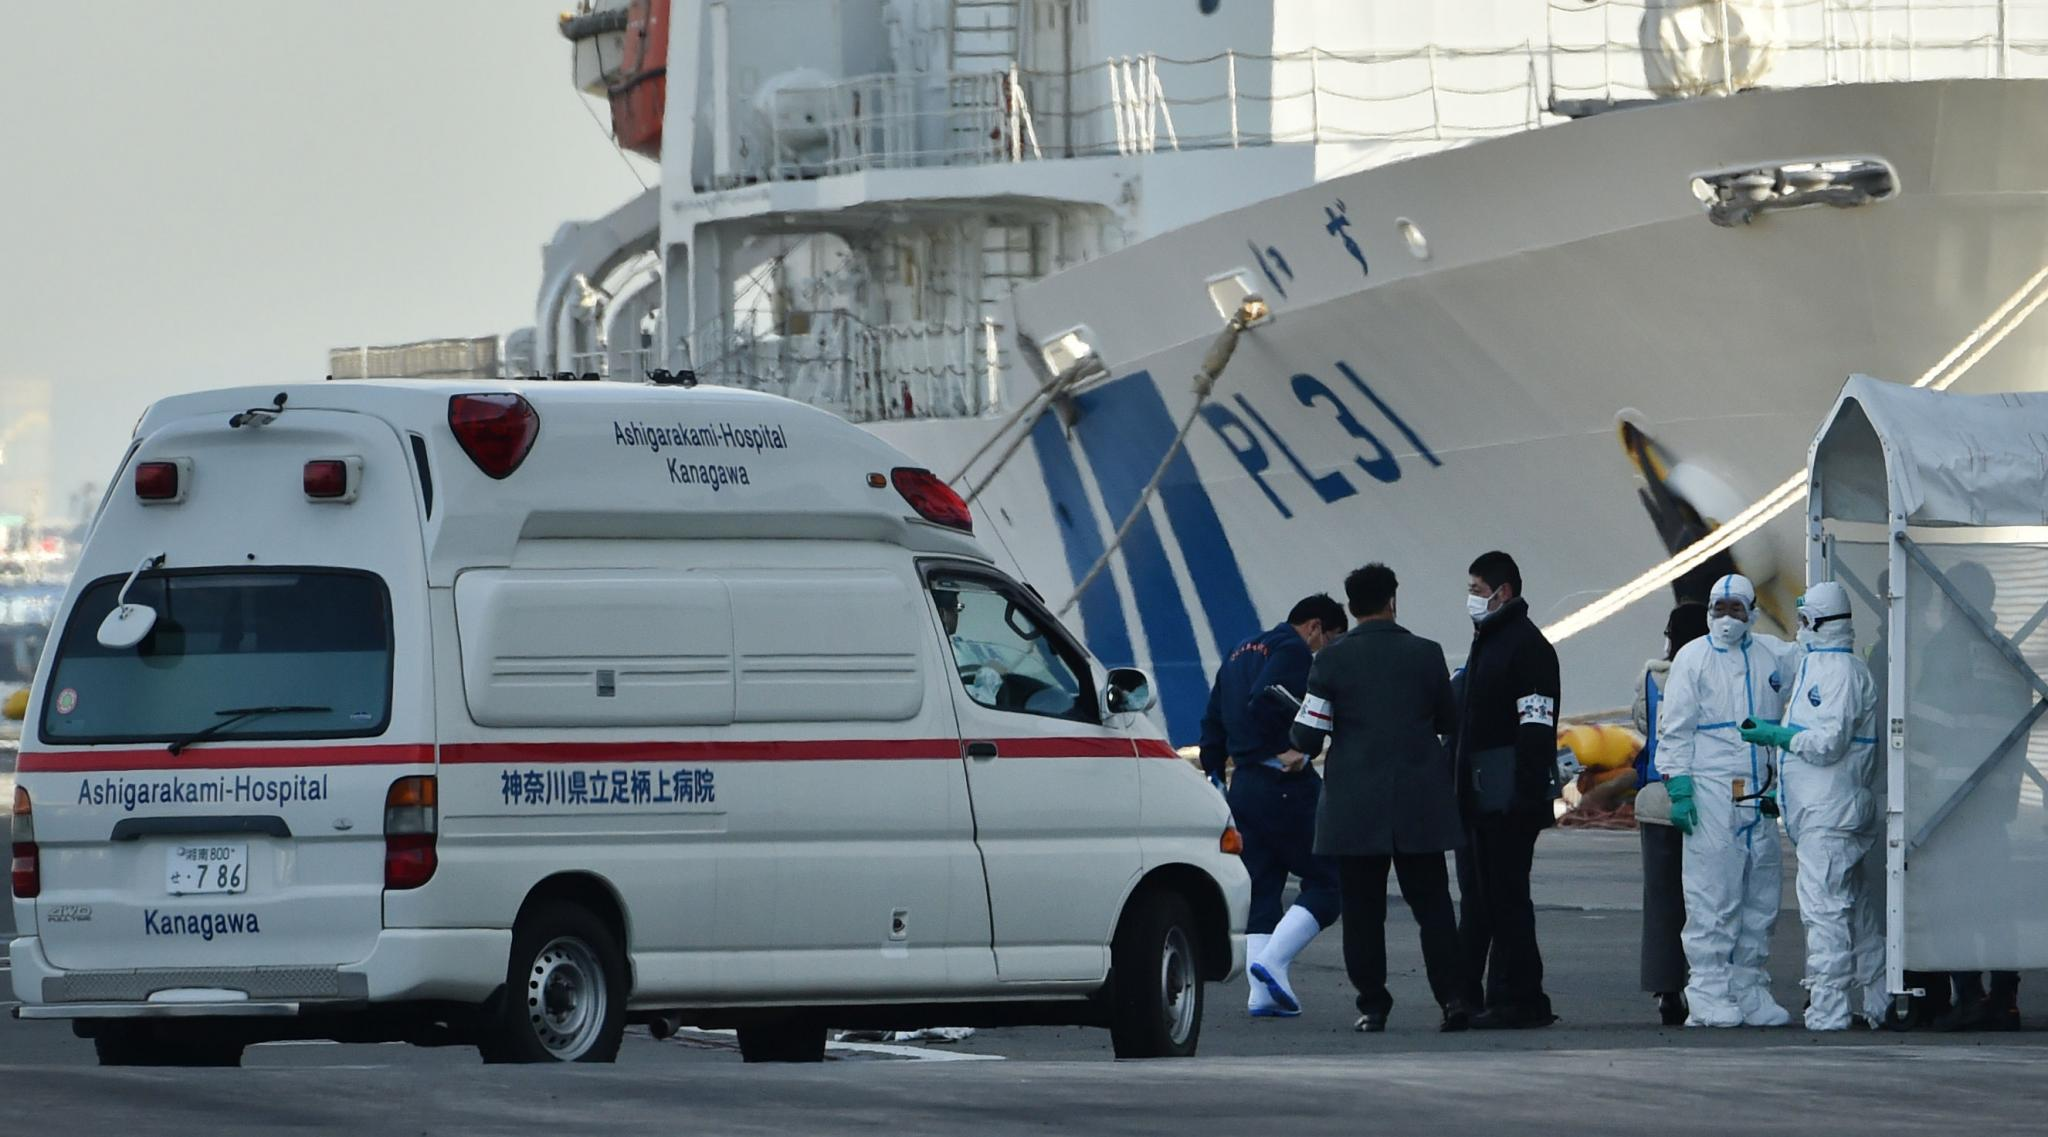 COVID-19 in Japan: US Evacuates American Passengers from Diamond Princess Cruise Ship as China Death Toll Climbs to 1,700